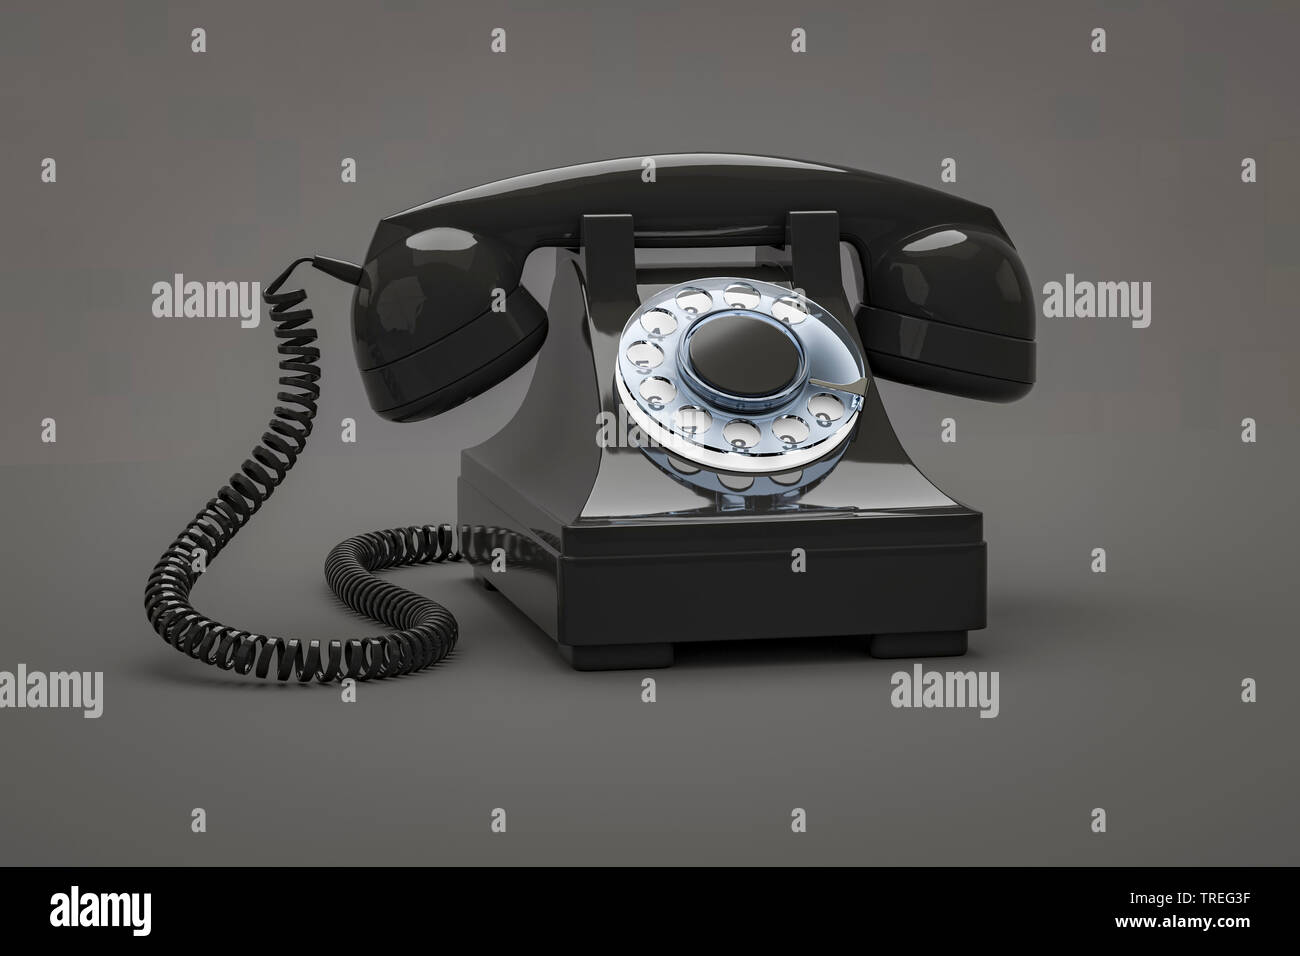 3D-Computergrafik, altmodisches Telefon mit Hoerer in Schwaz vor grauem Hintergrund | 3D computer graphic, vintage telephone set with earphone in blac - Stock Image